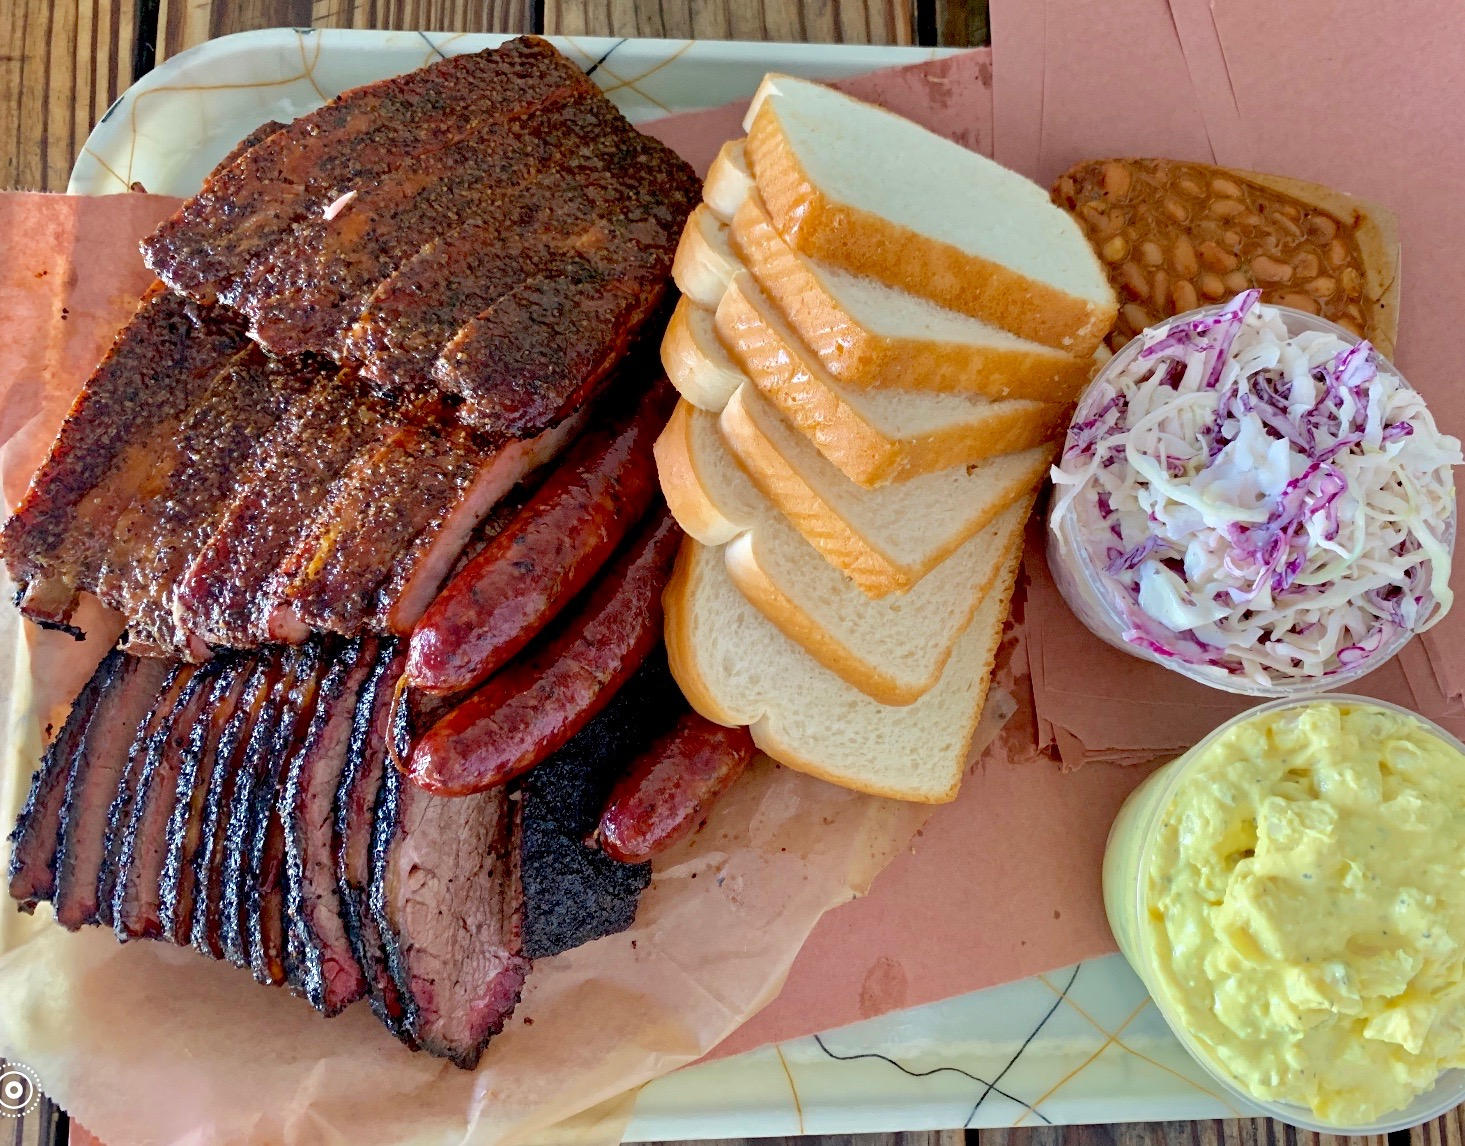 Franklin Barbecue's Brisket, sausage, and pork ribs with baked beans, cole slaw and potato salad — worth waiting hours for? You bet it is!